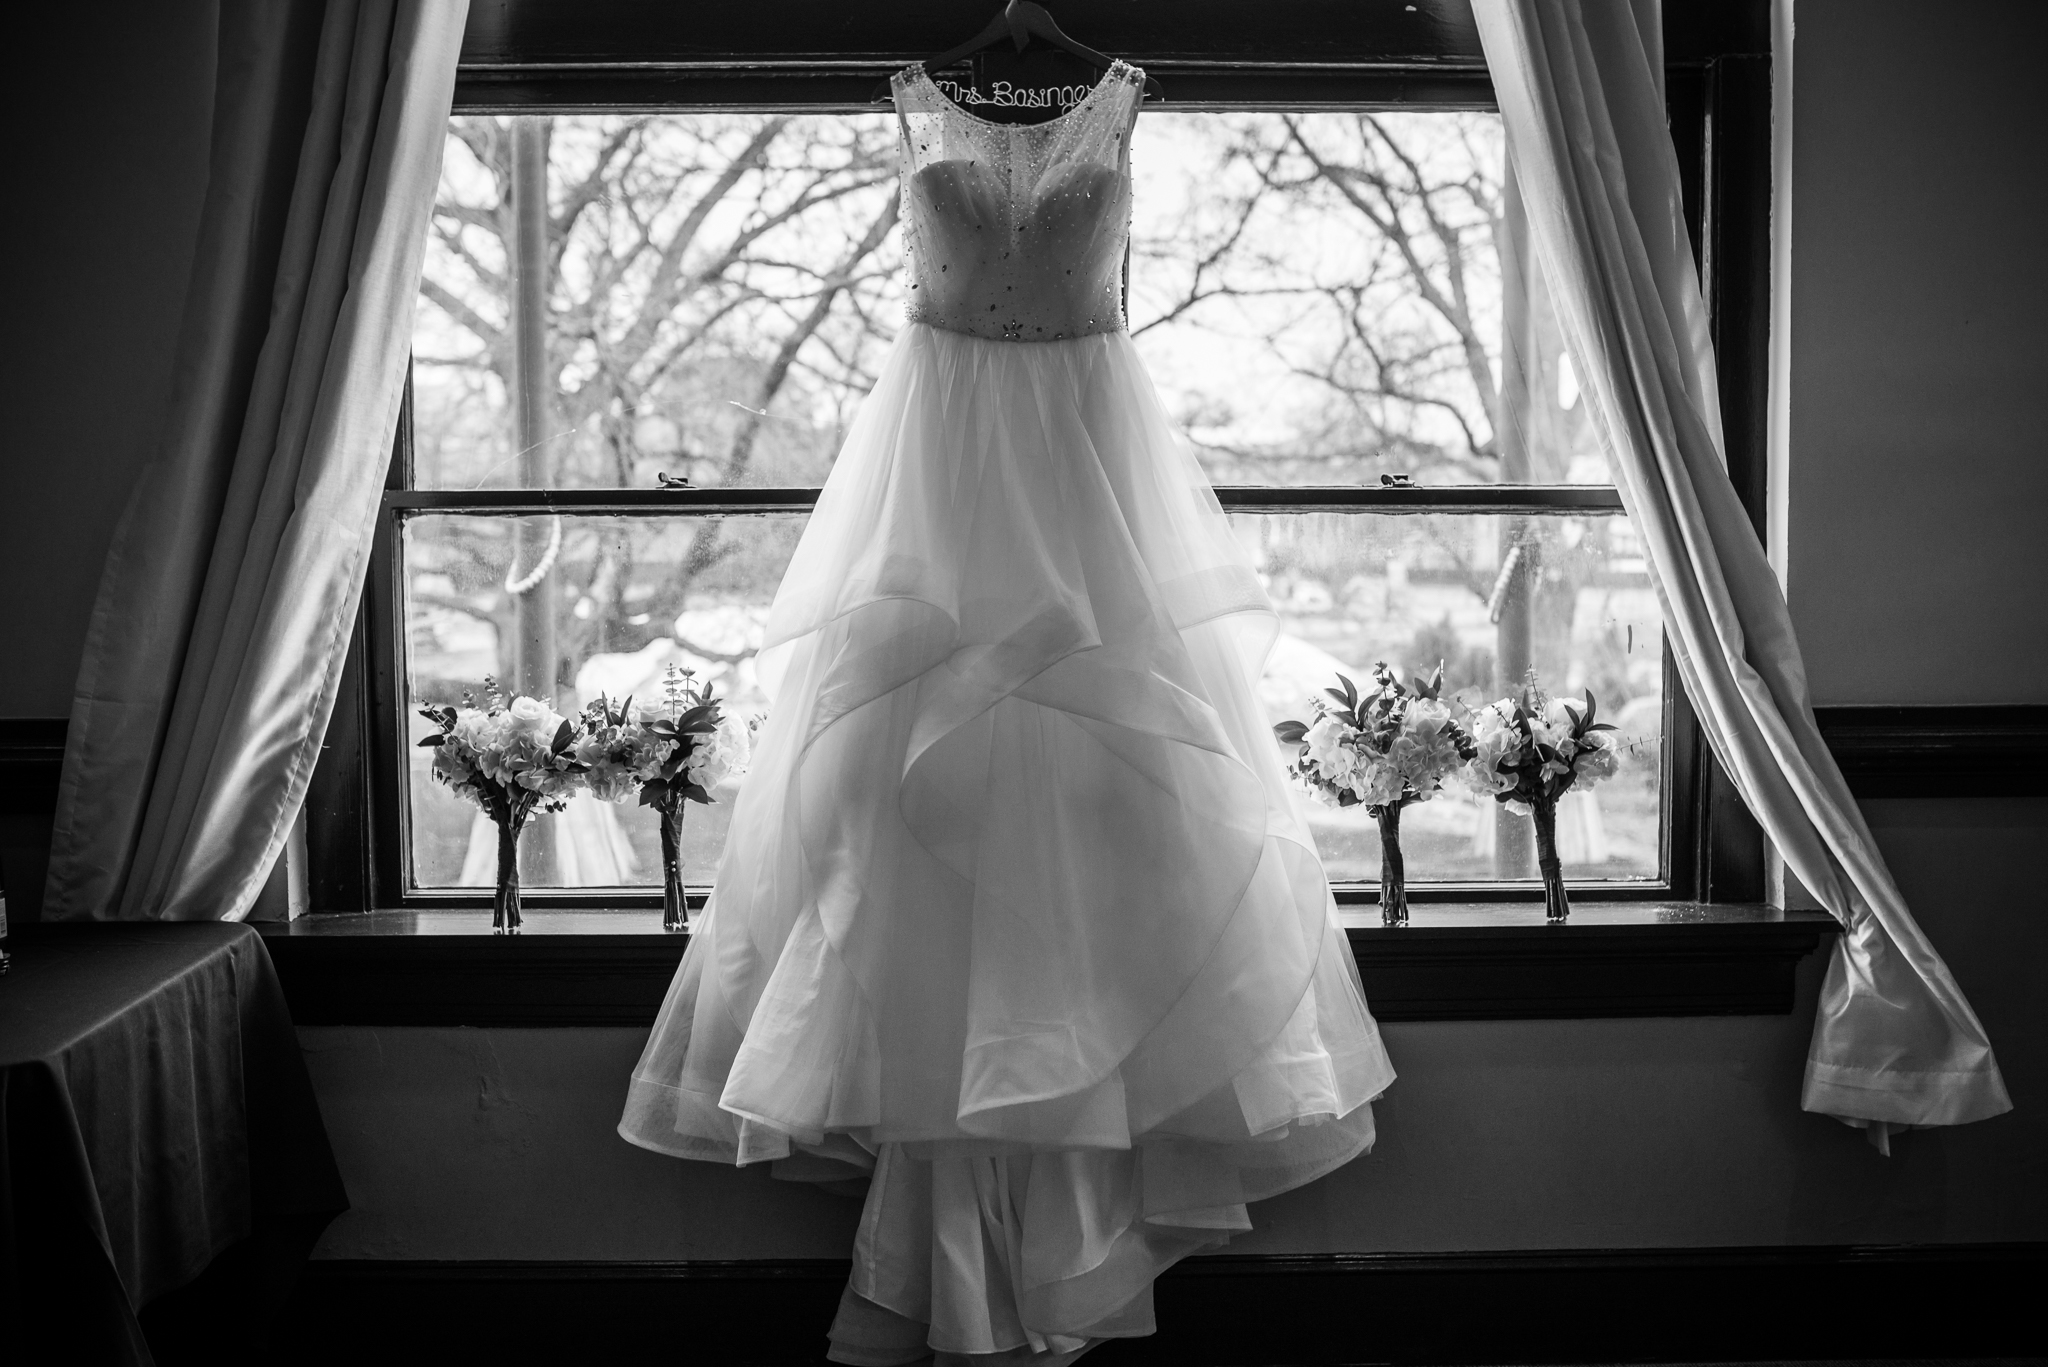 asheville-wedding-photographer-78.jpg